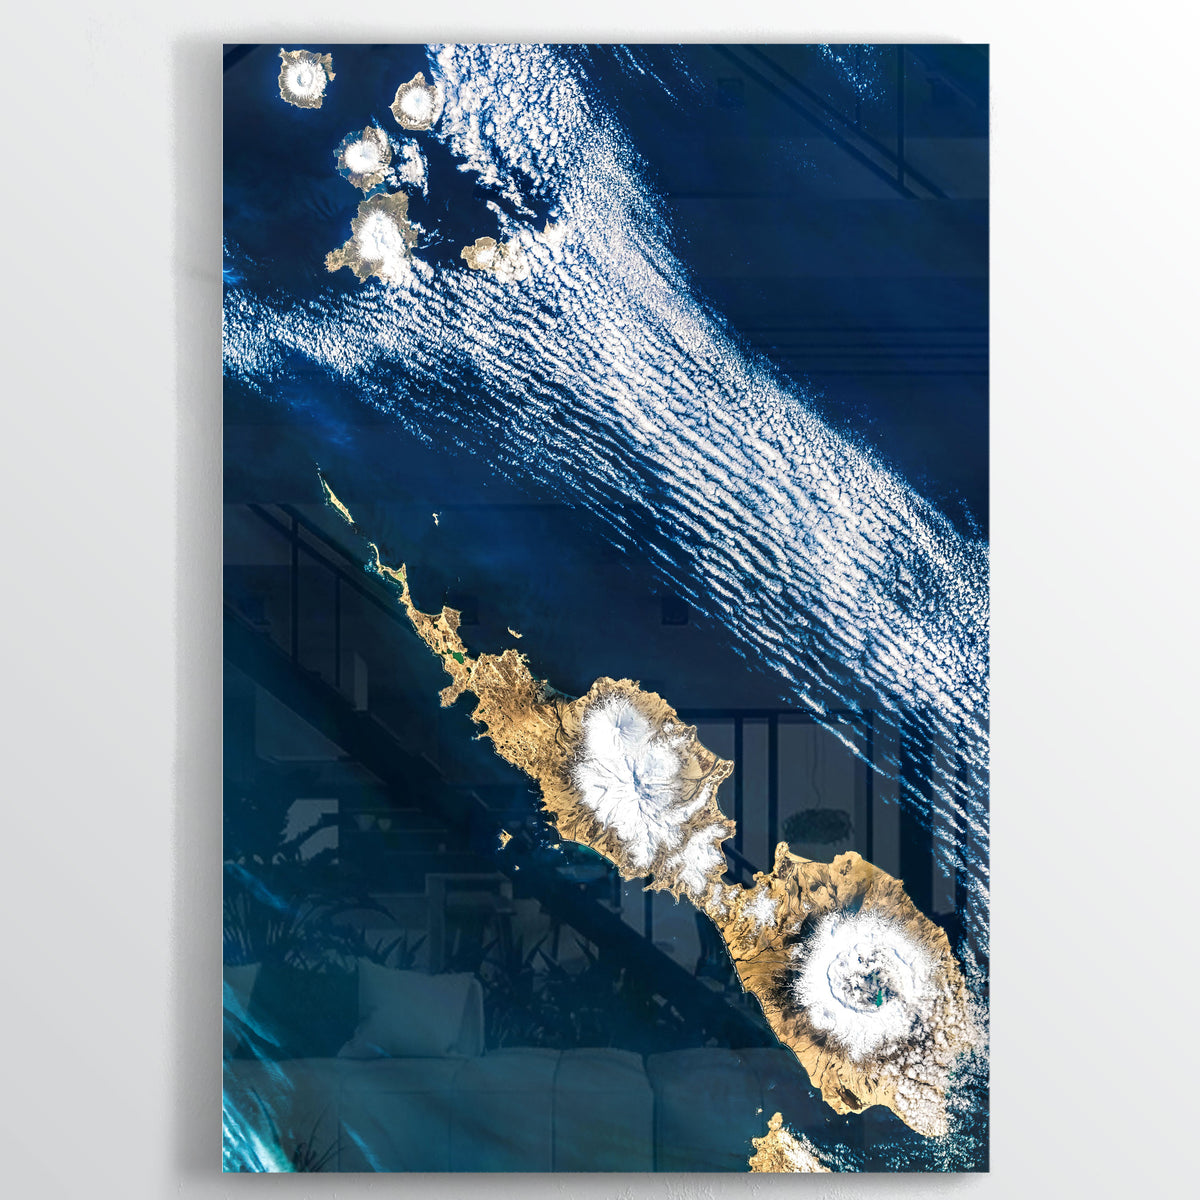 Umnak Island Earth Photography - Floating Acrylic Art